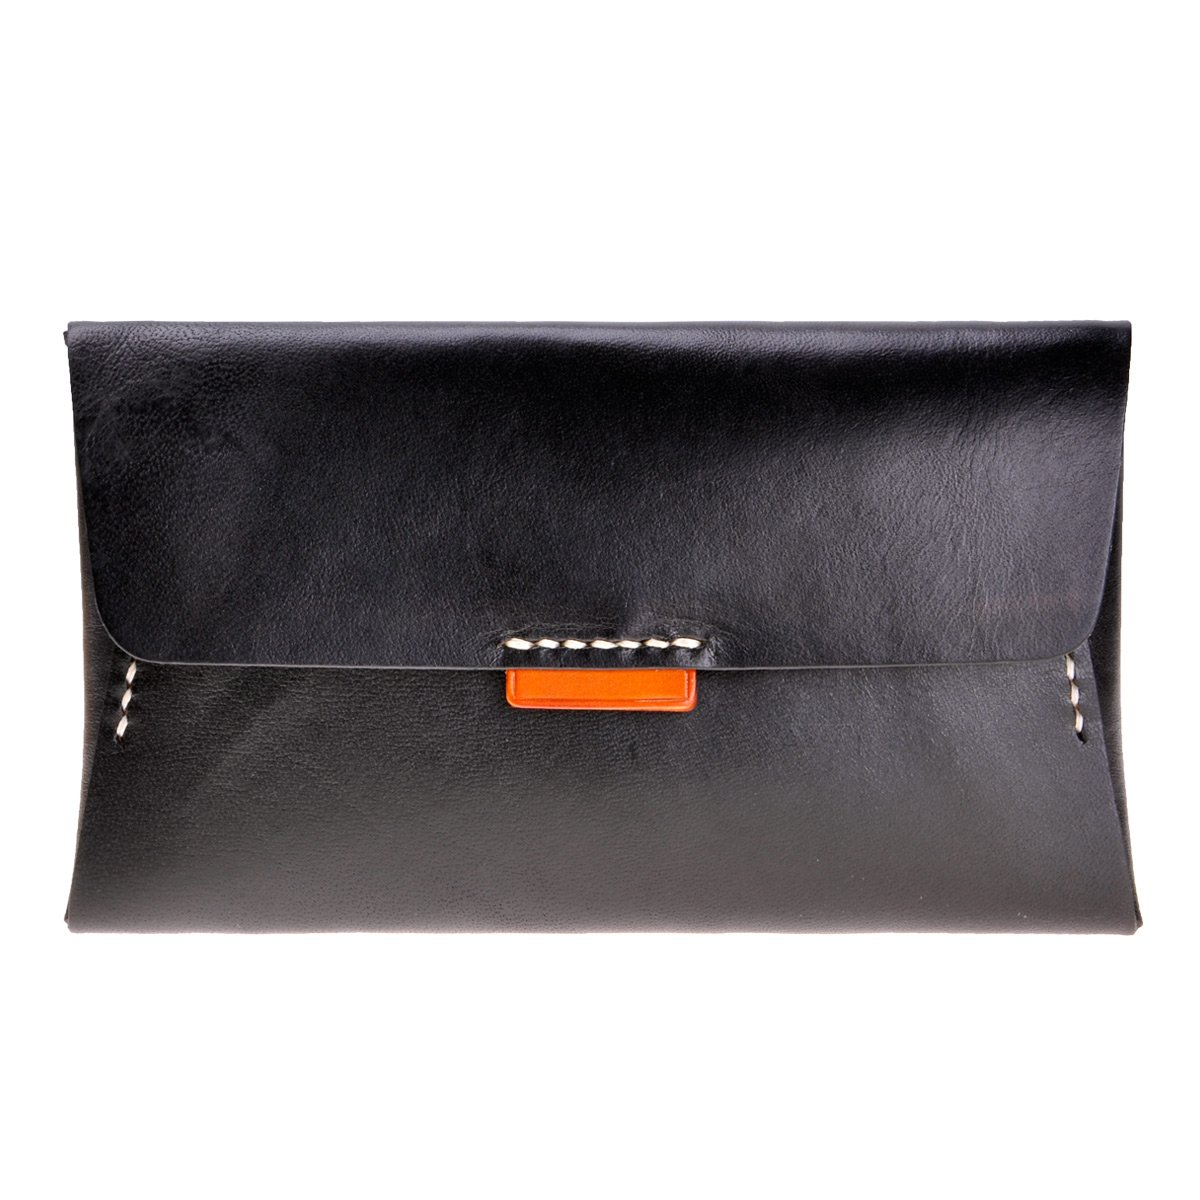 ZLYC Women Fashion Envelope Design Leather Wallet Clutch with Removable Card Holder, Black